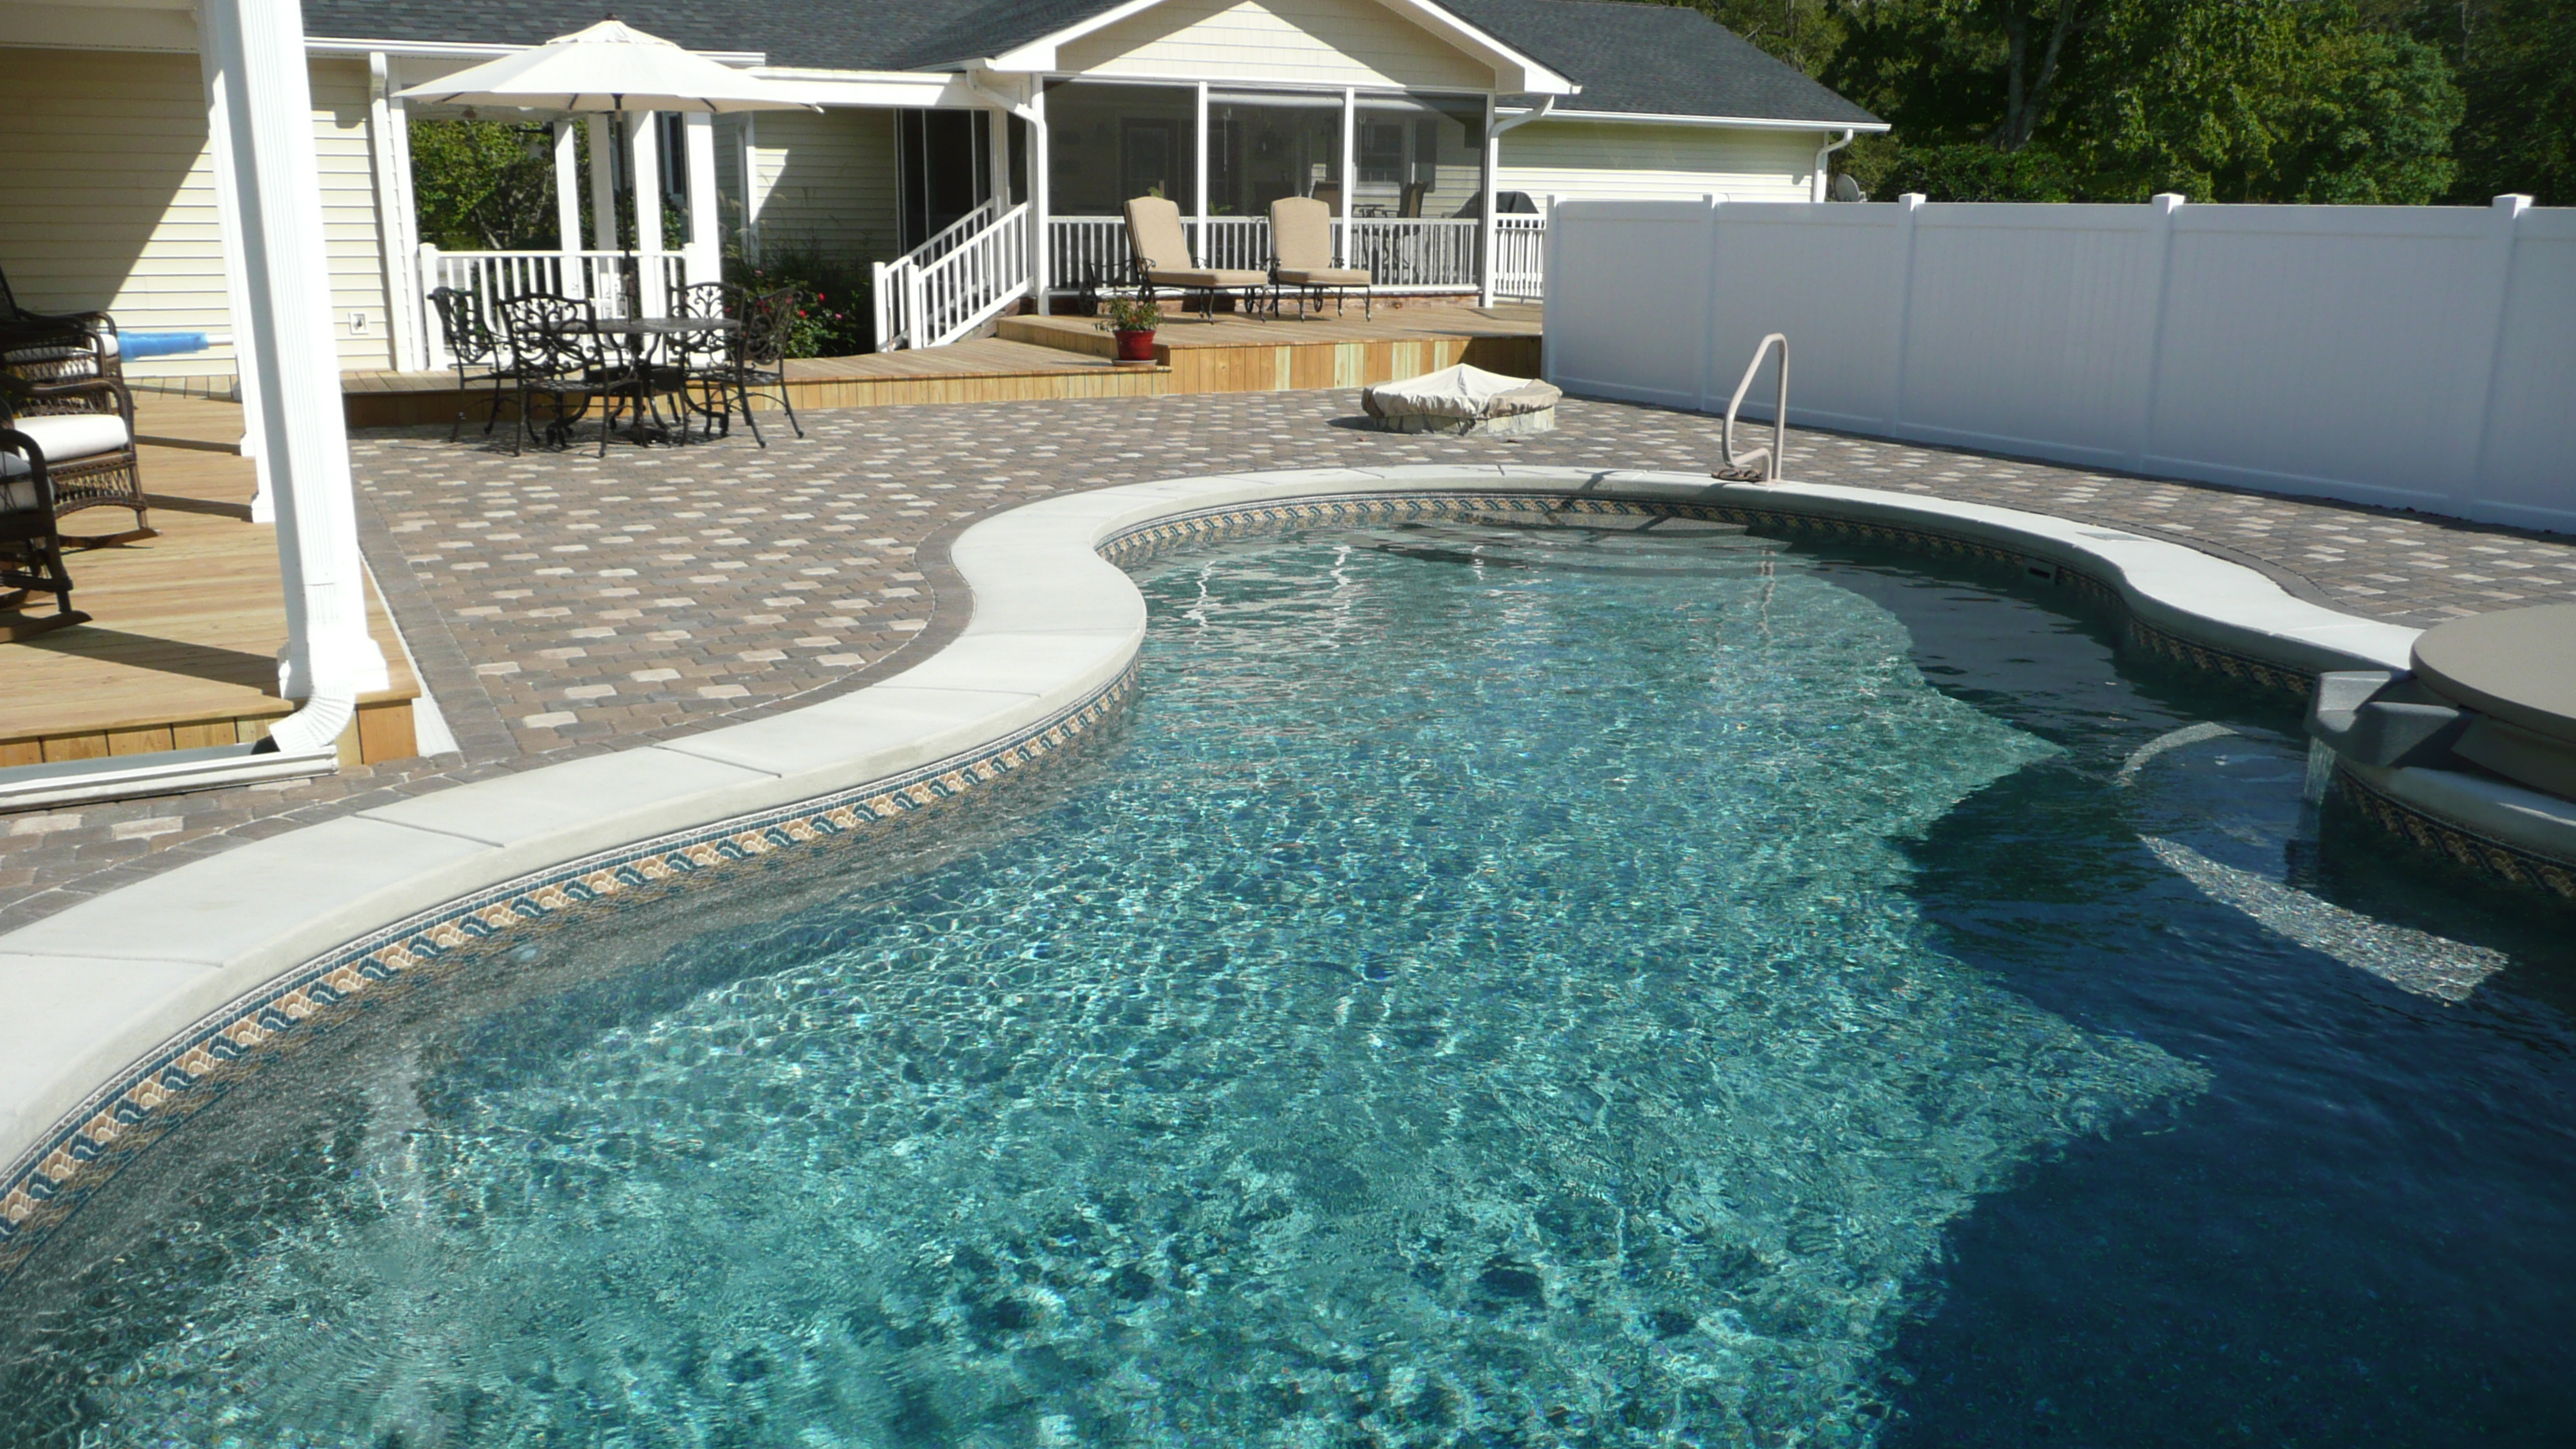 Vinyl liner pools of eastern north carolina for Vinyl swimming pool